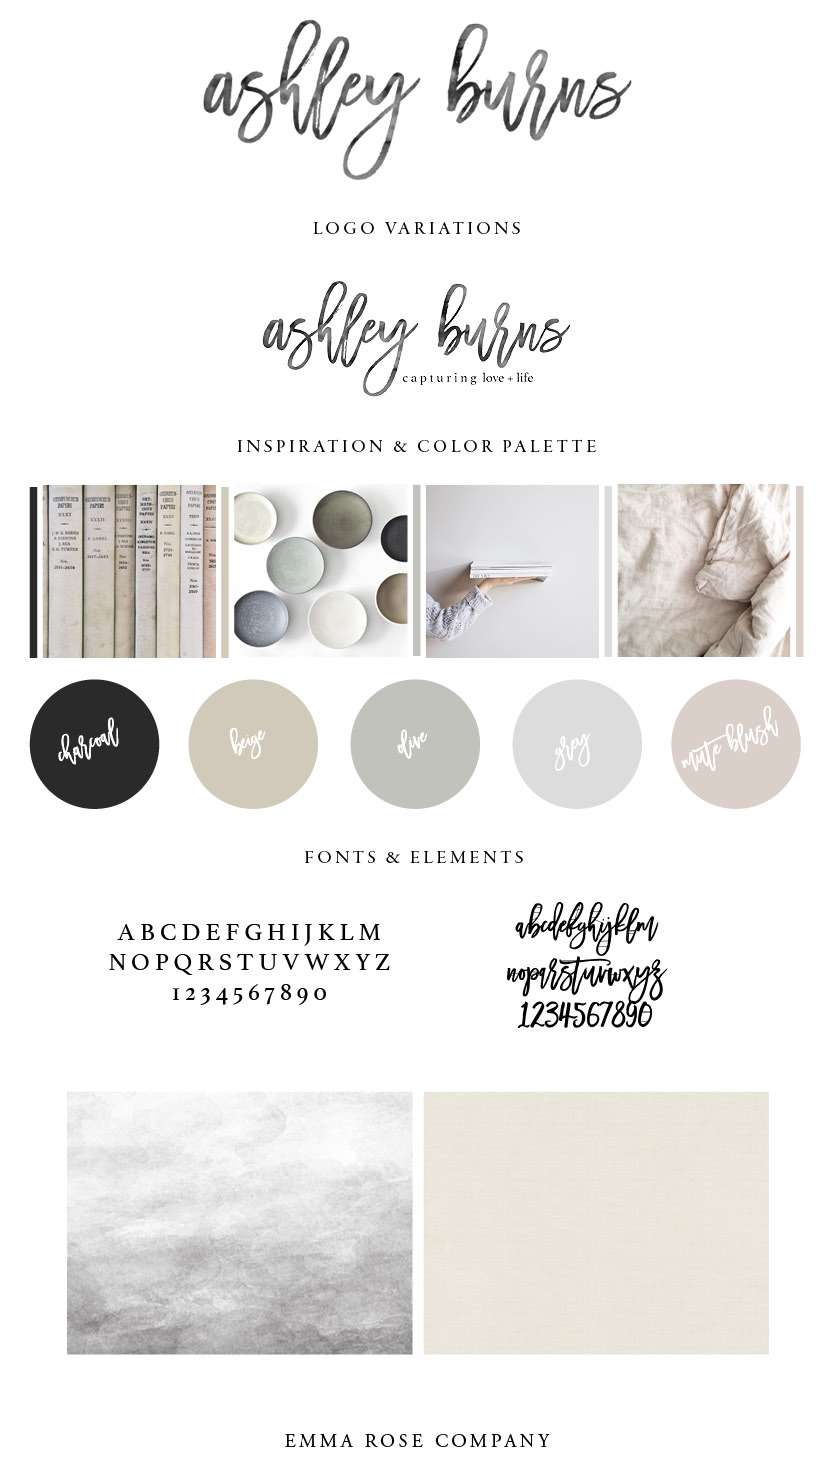 Ashley Burns Photography Brand Style Guide